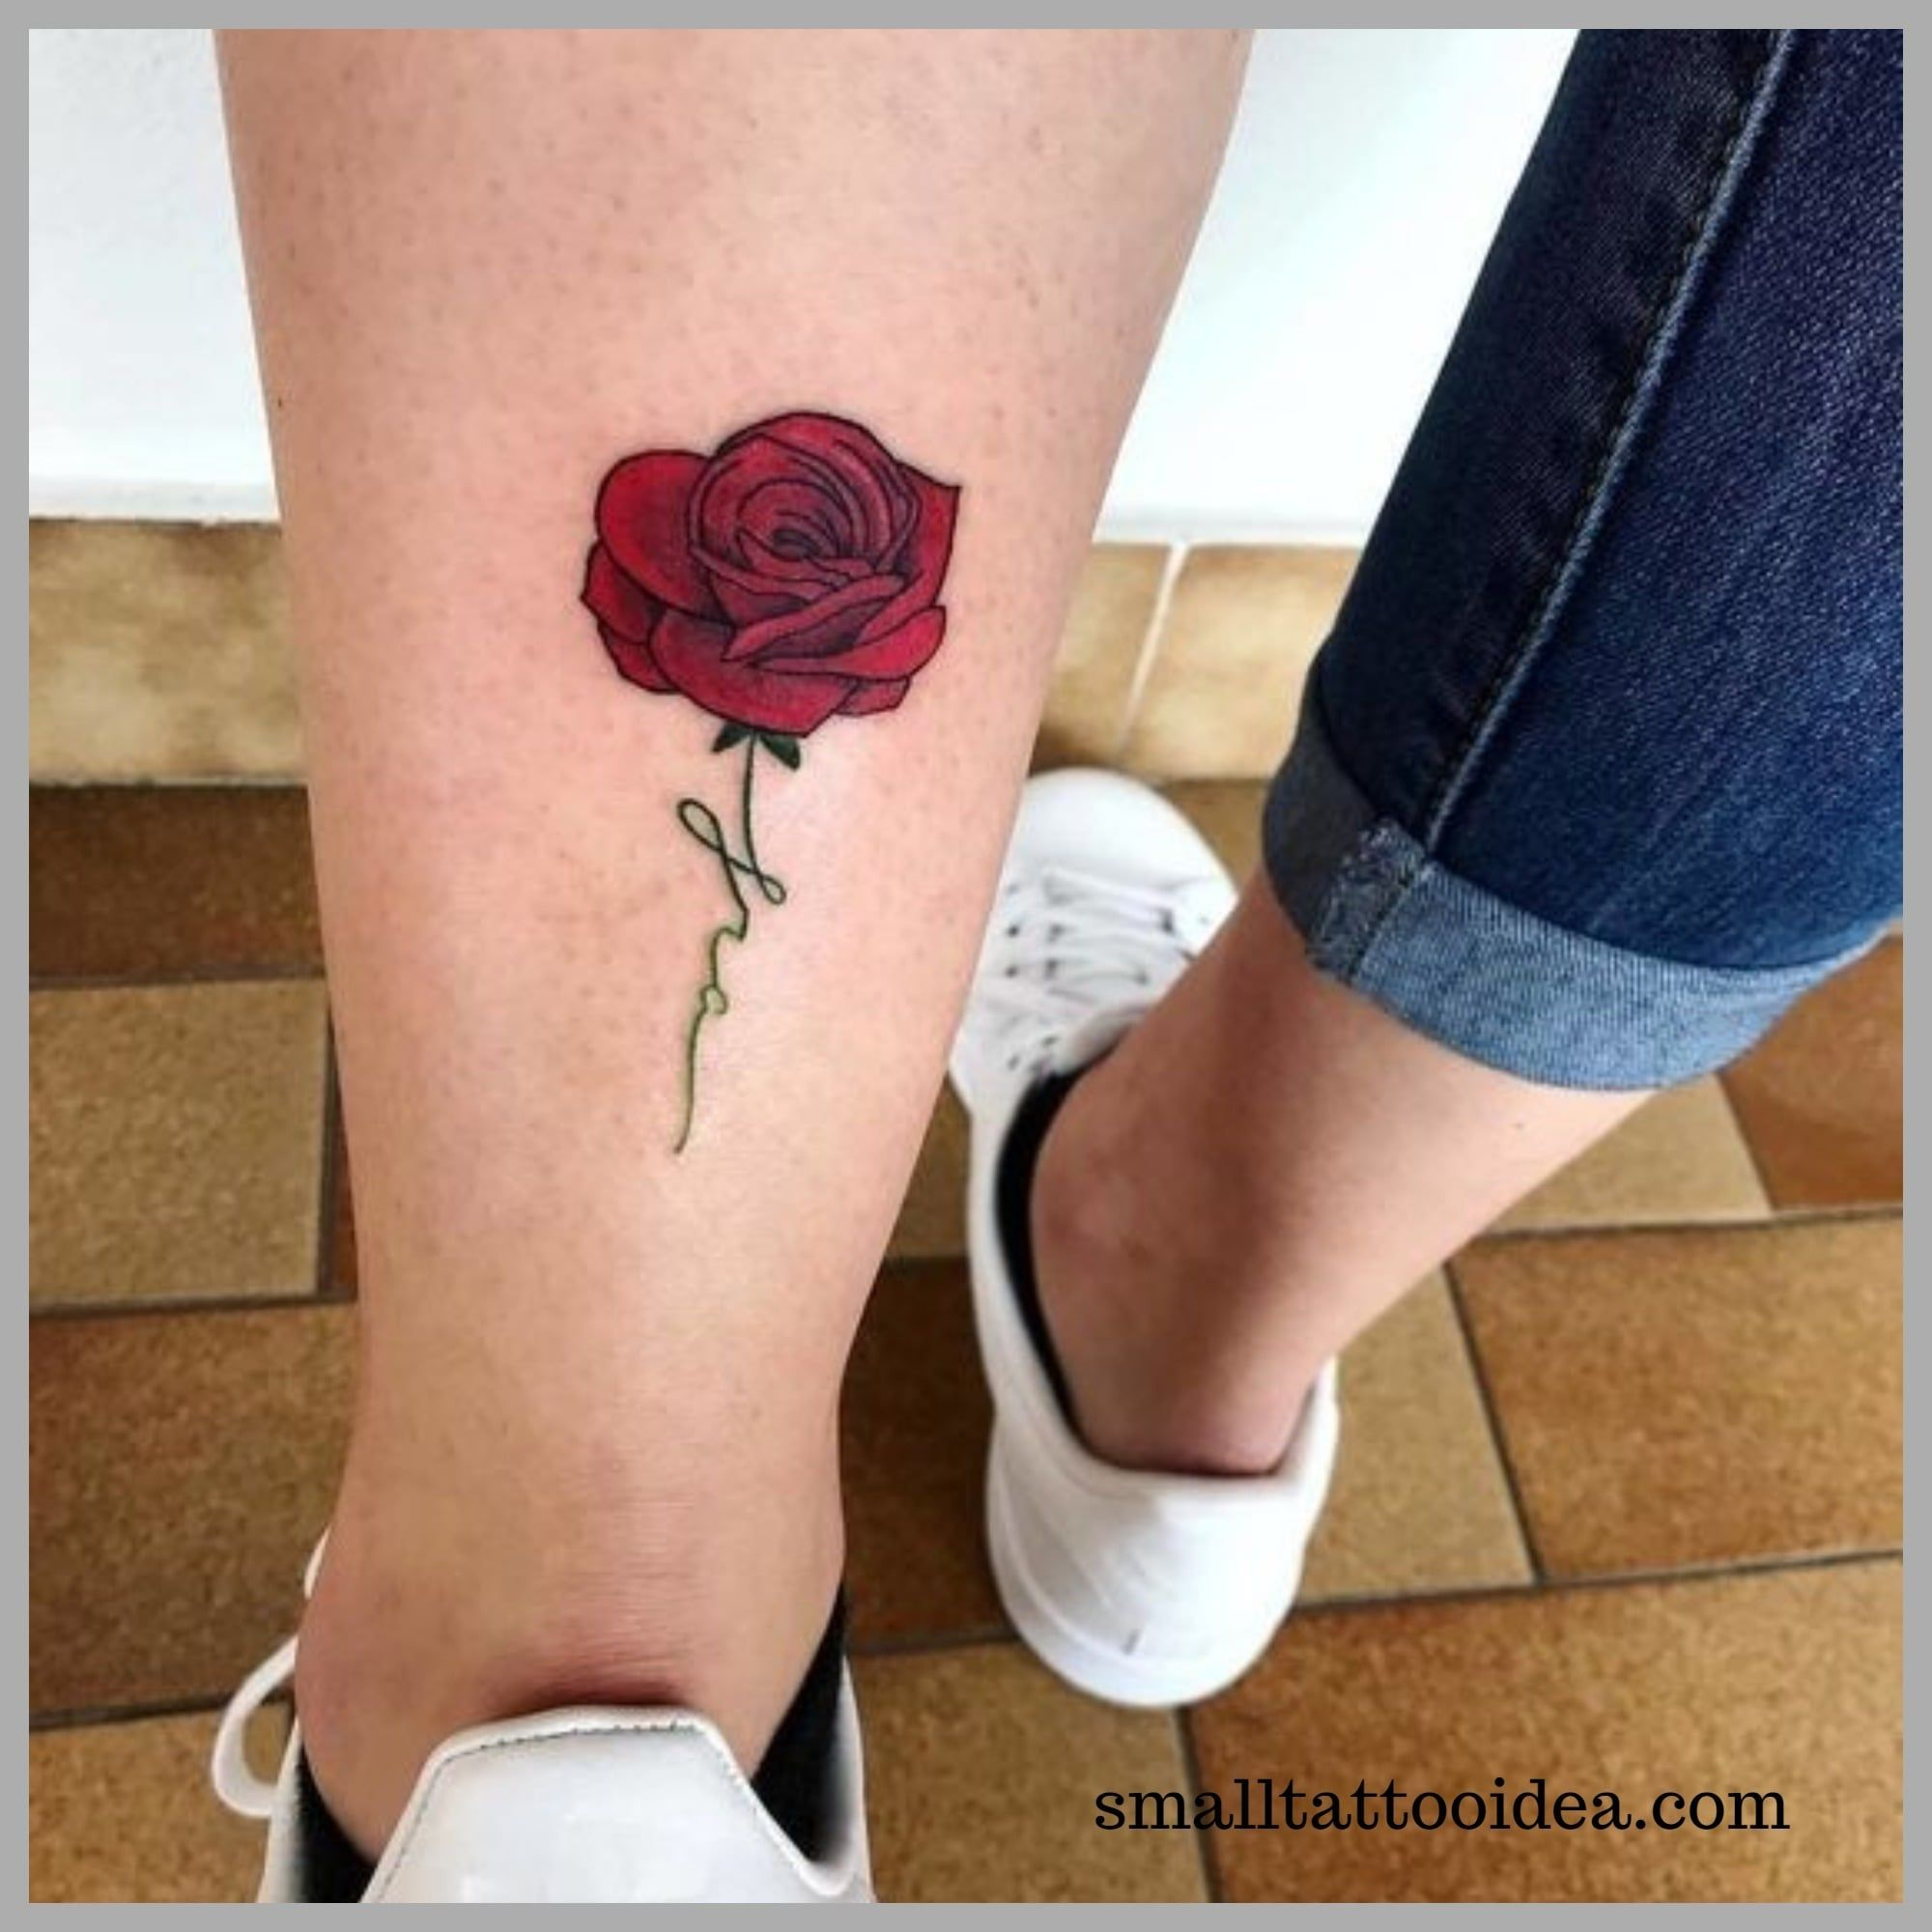 35 Small Red Rose Tattoo Ideas For Girls Tattoo Rose Tattoos For Women Tattoos Small Rose Tattoo